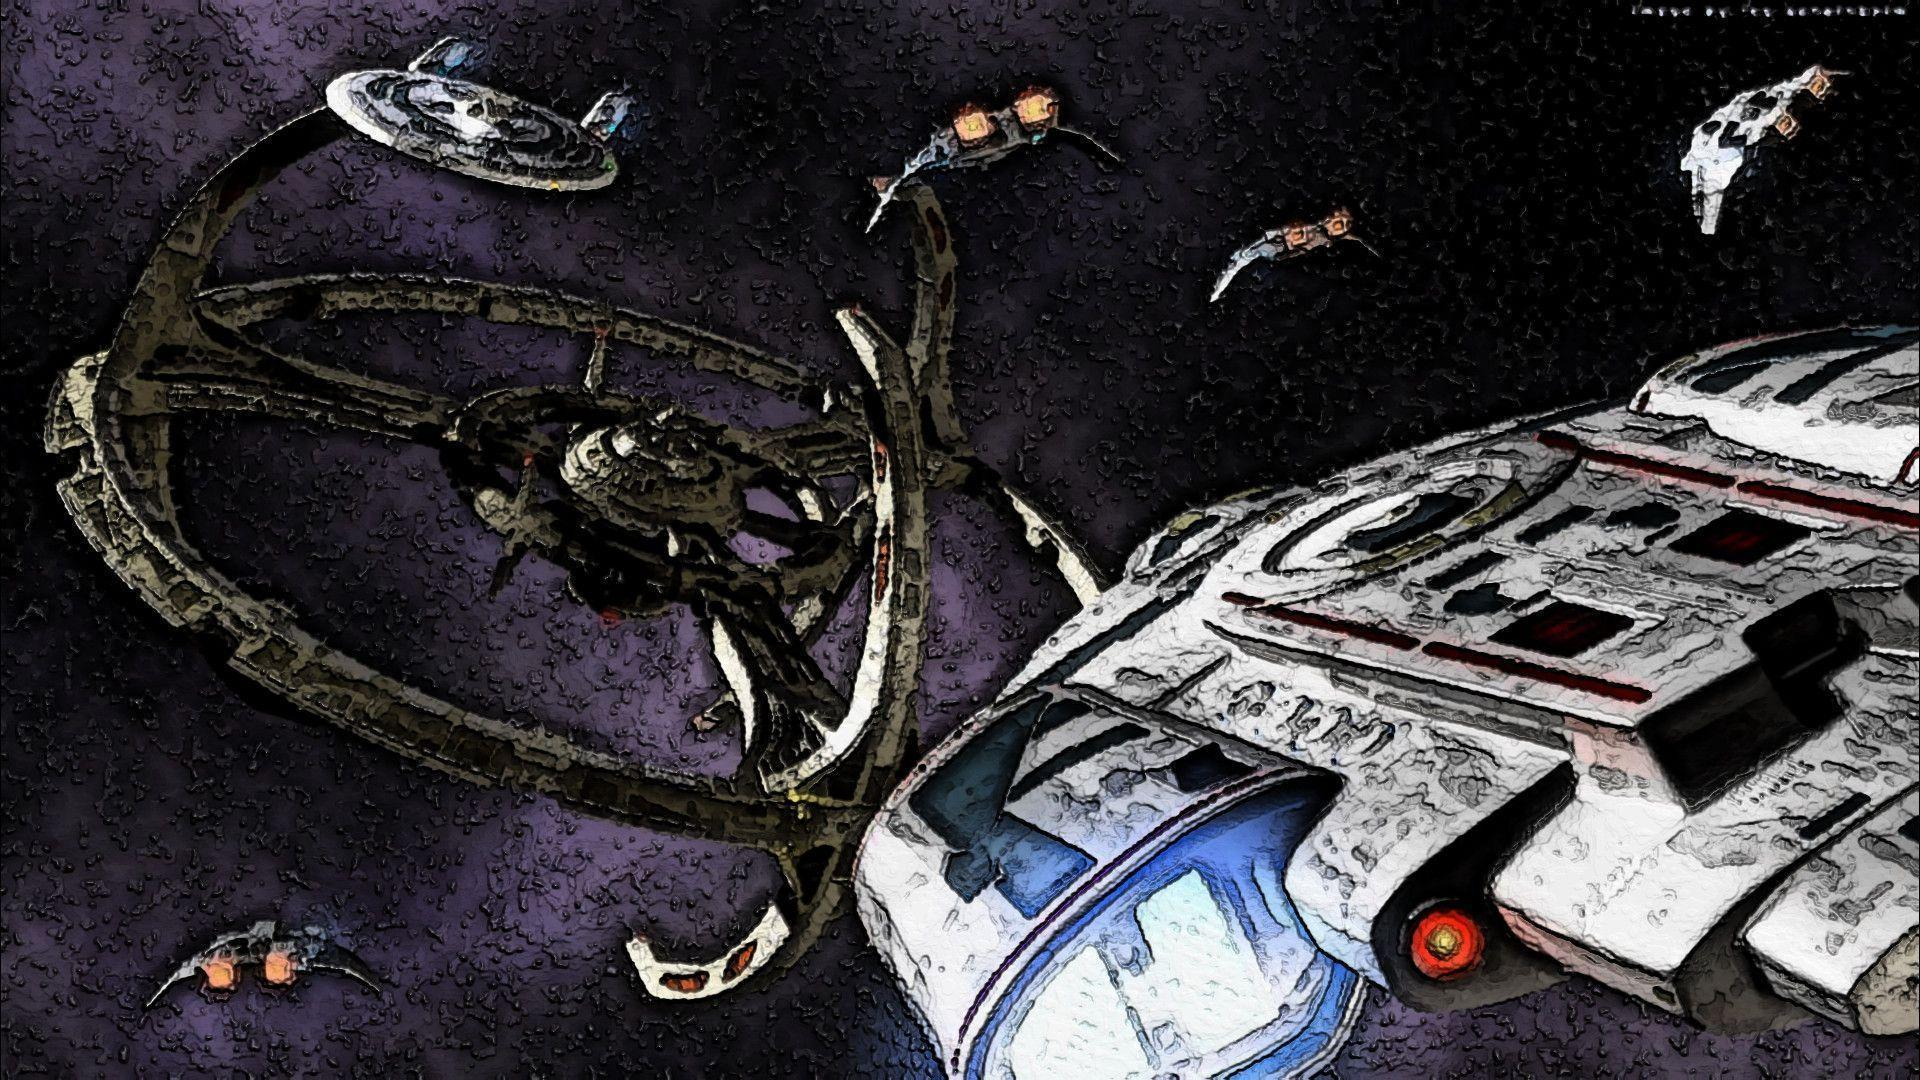 Deep Space Nine Wallpapers 1920x1080